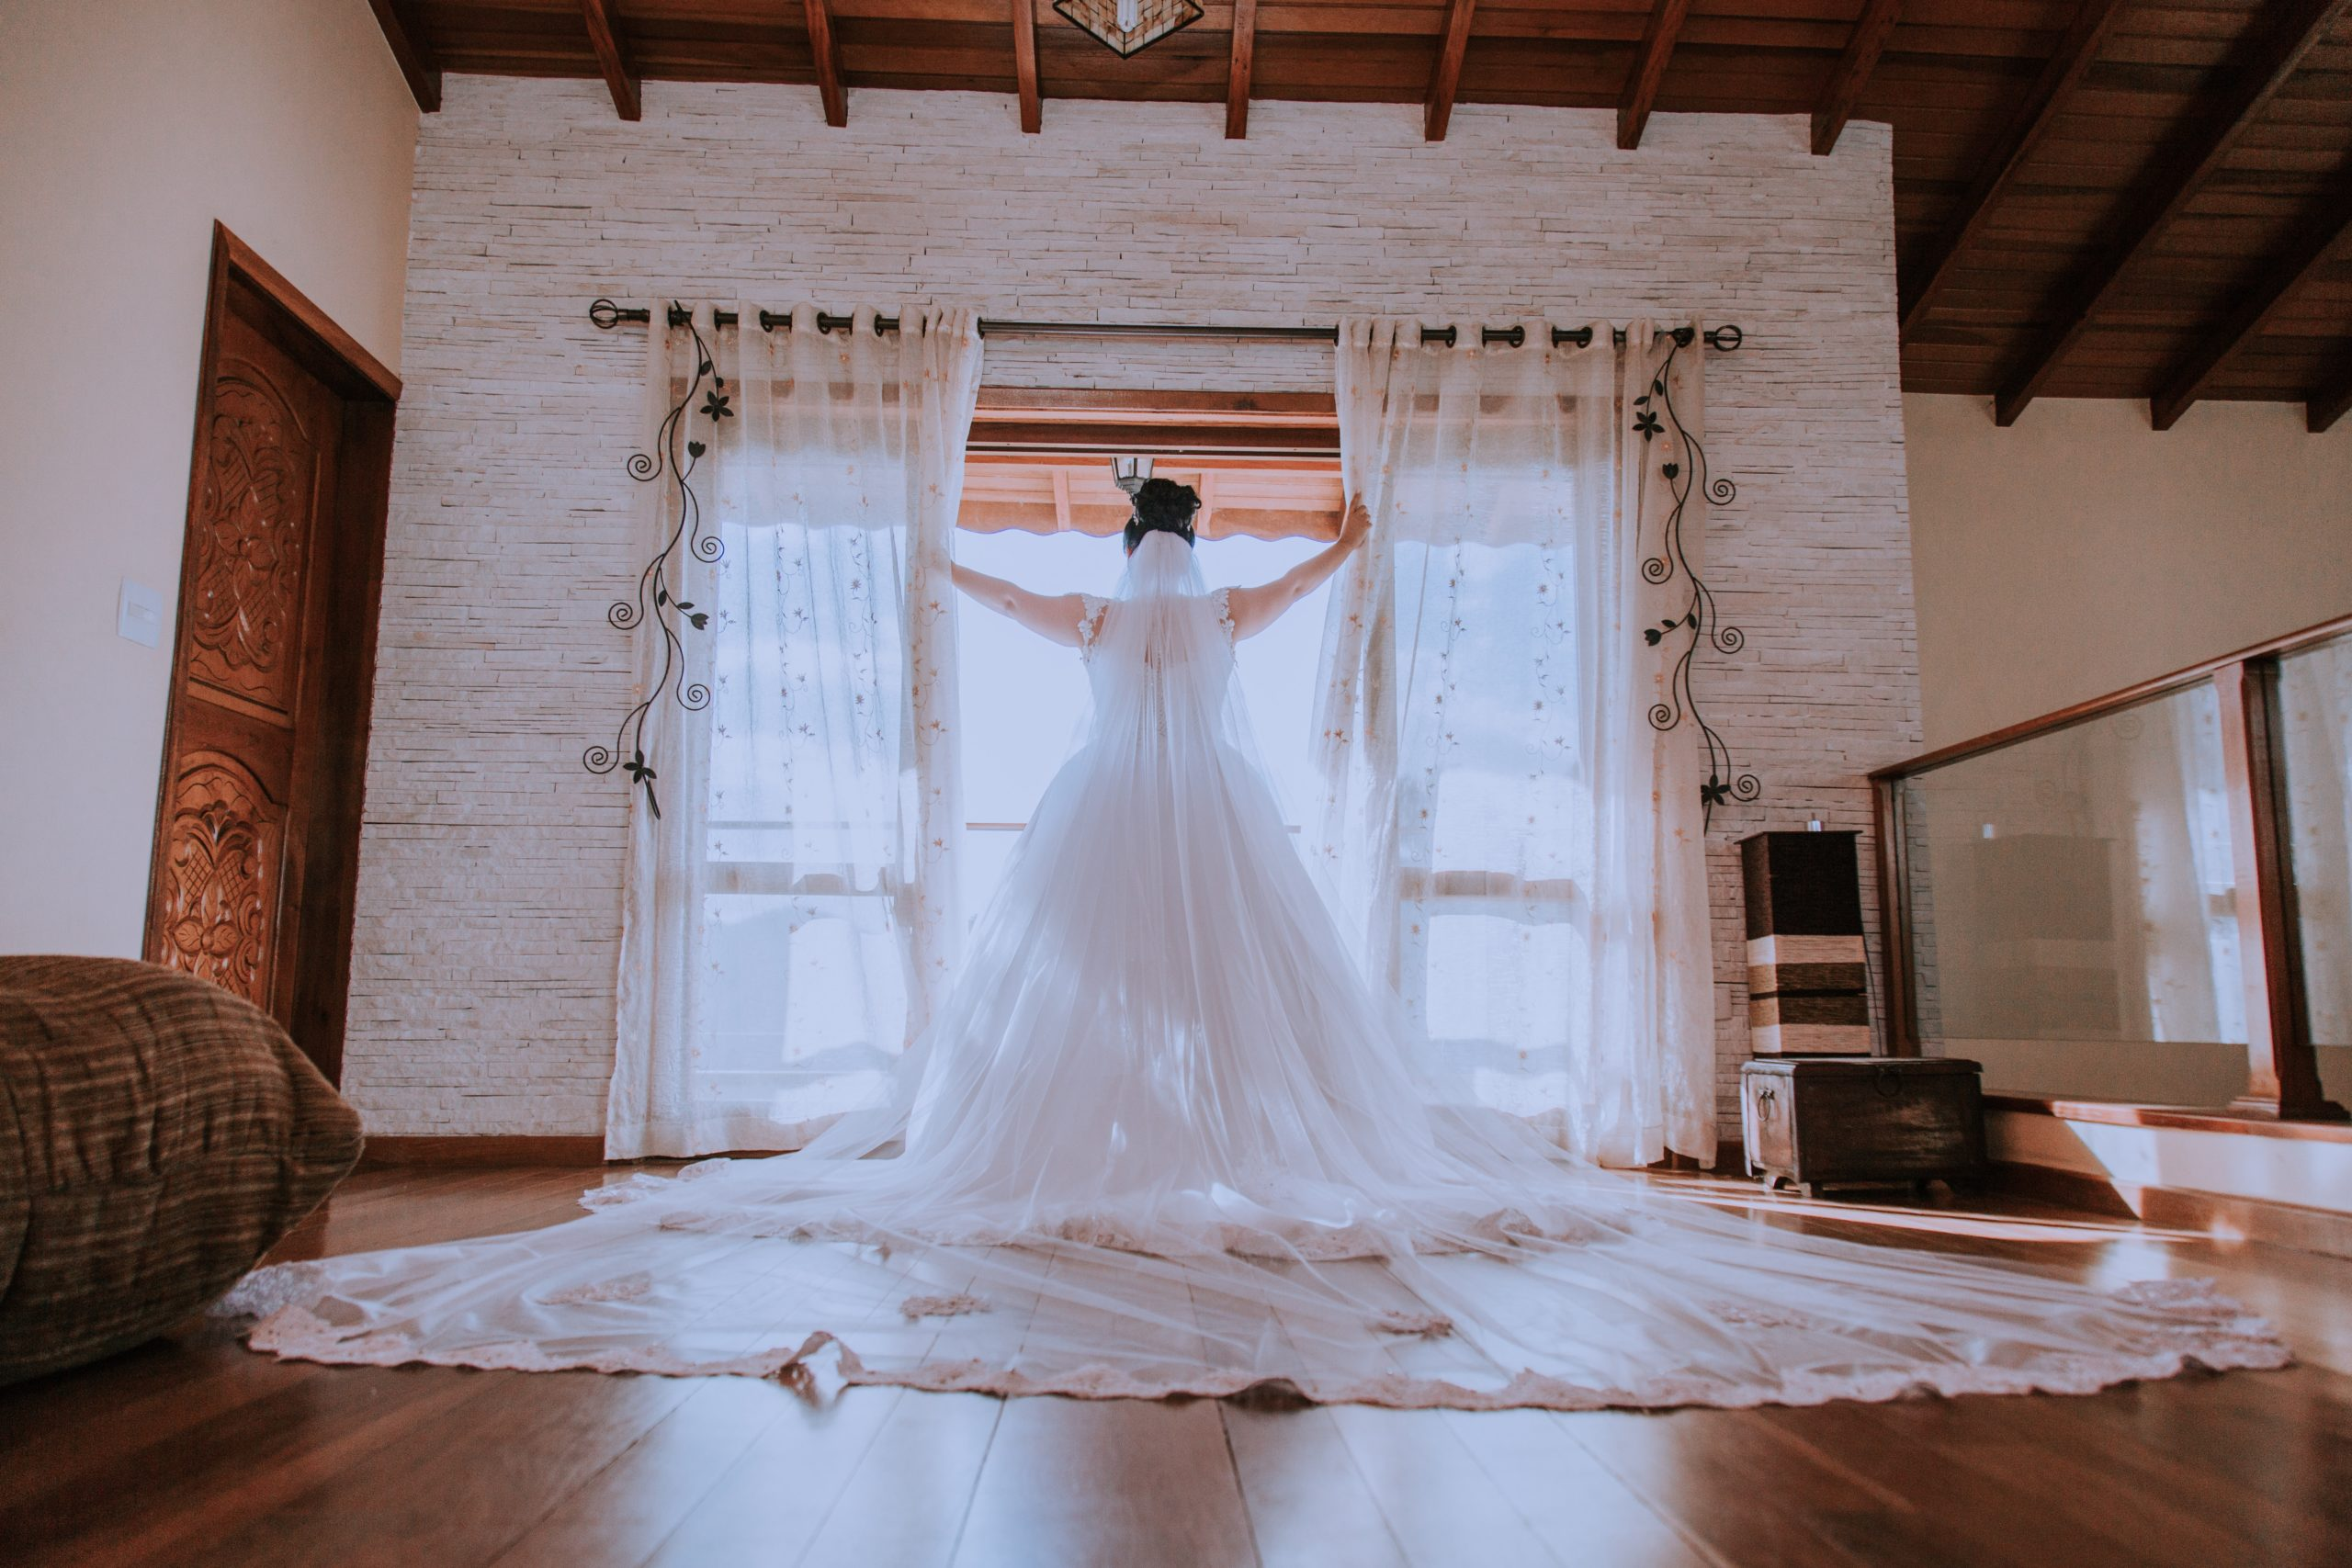 woman-in-white-wedding-gown-by-the-window-2046681